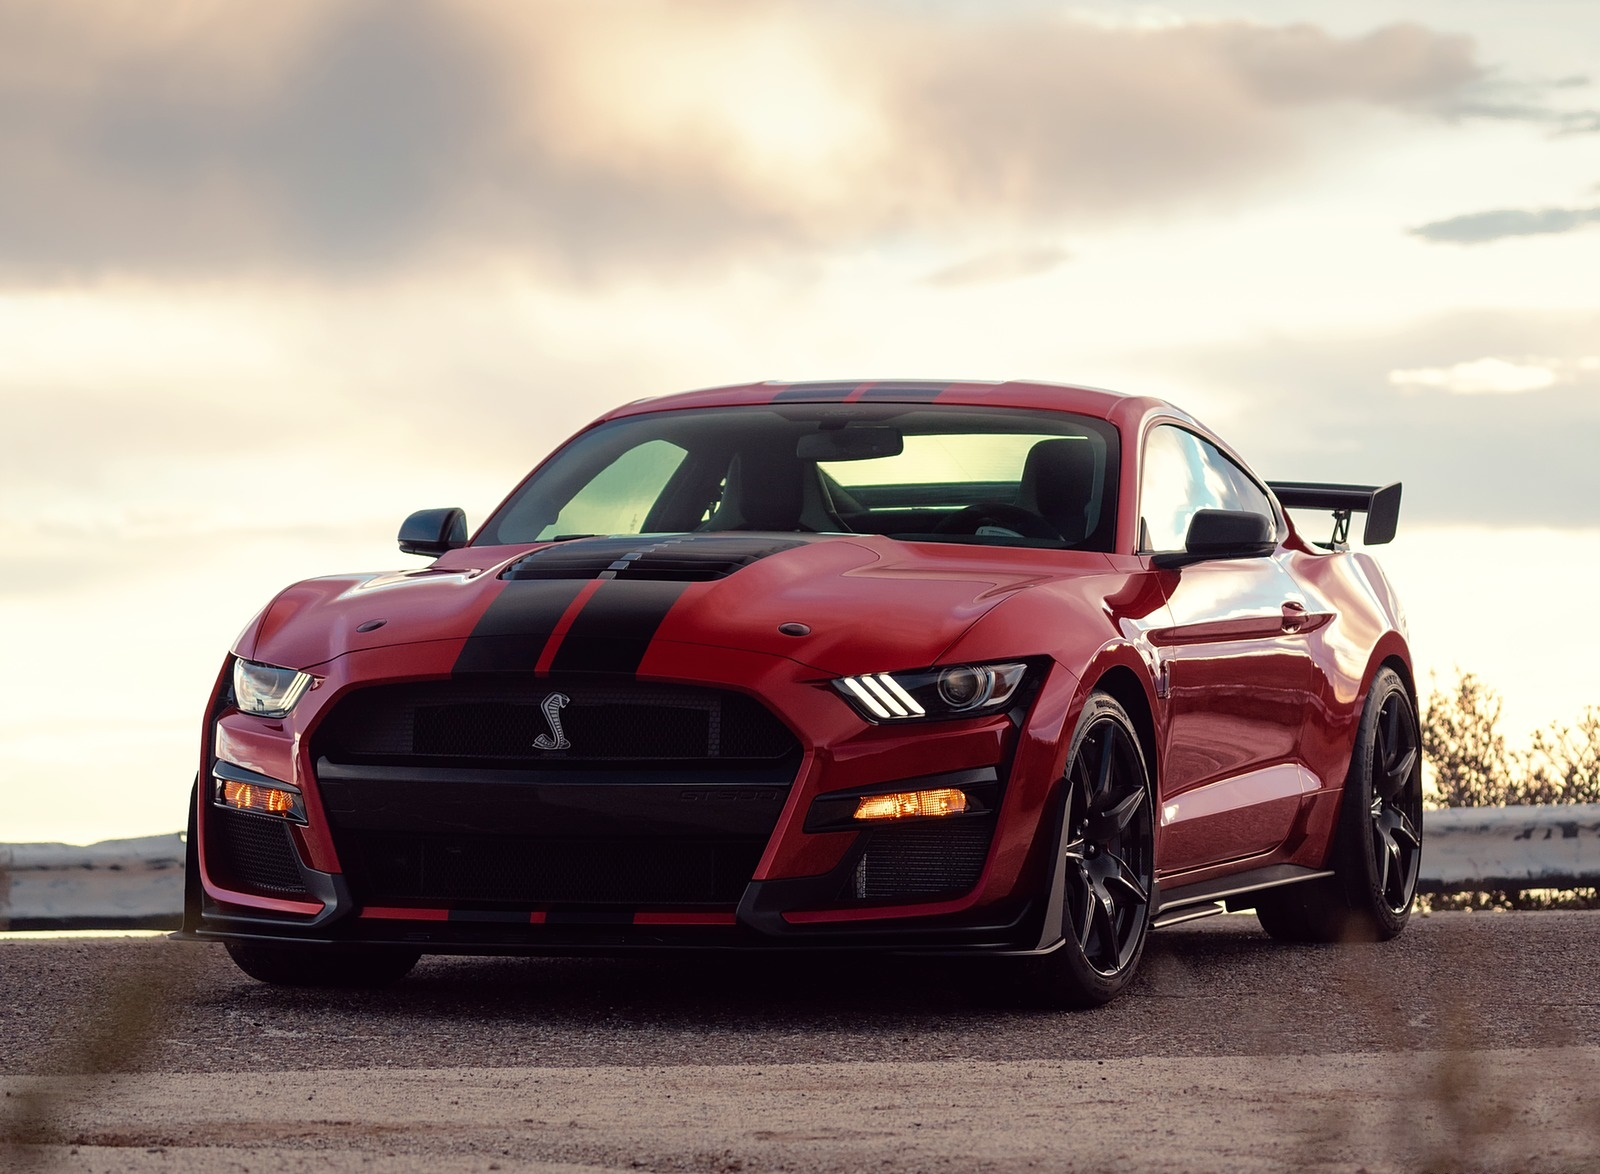 2020 Ford Mustang Shelby Gt500 Front Wallpapers ...